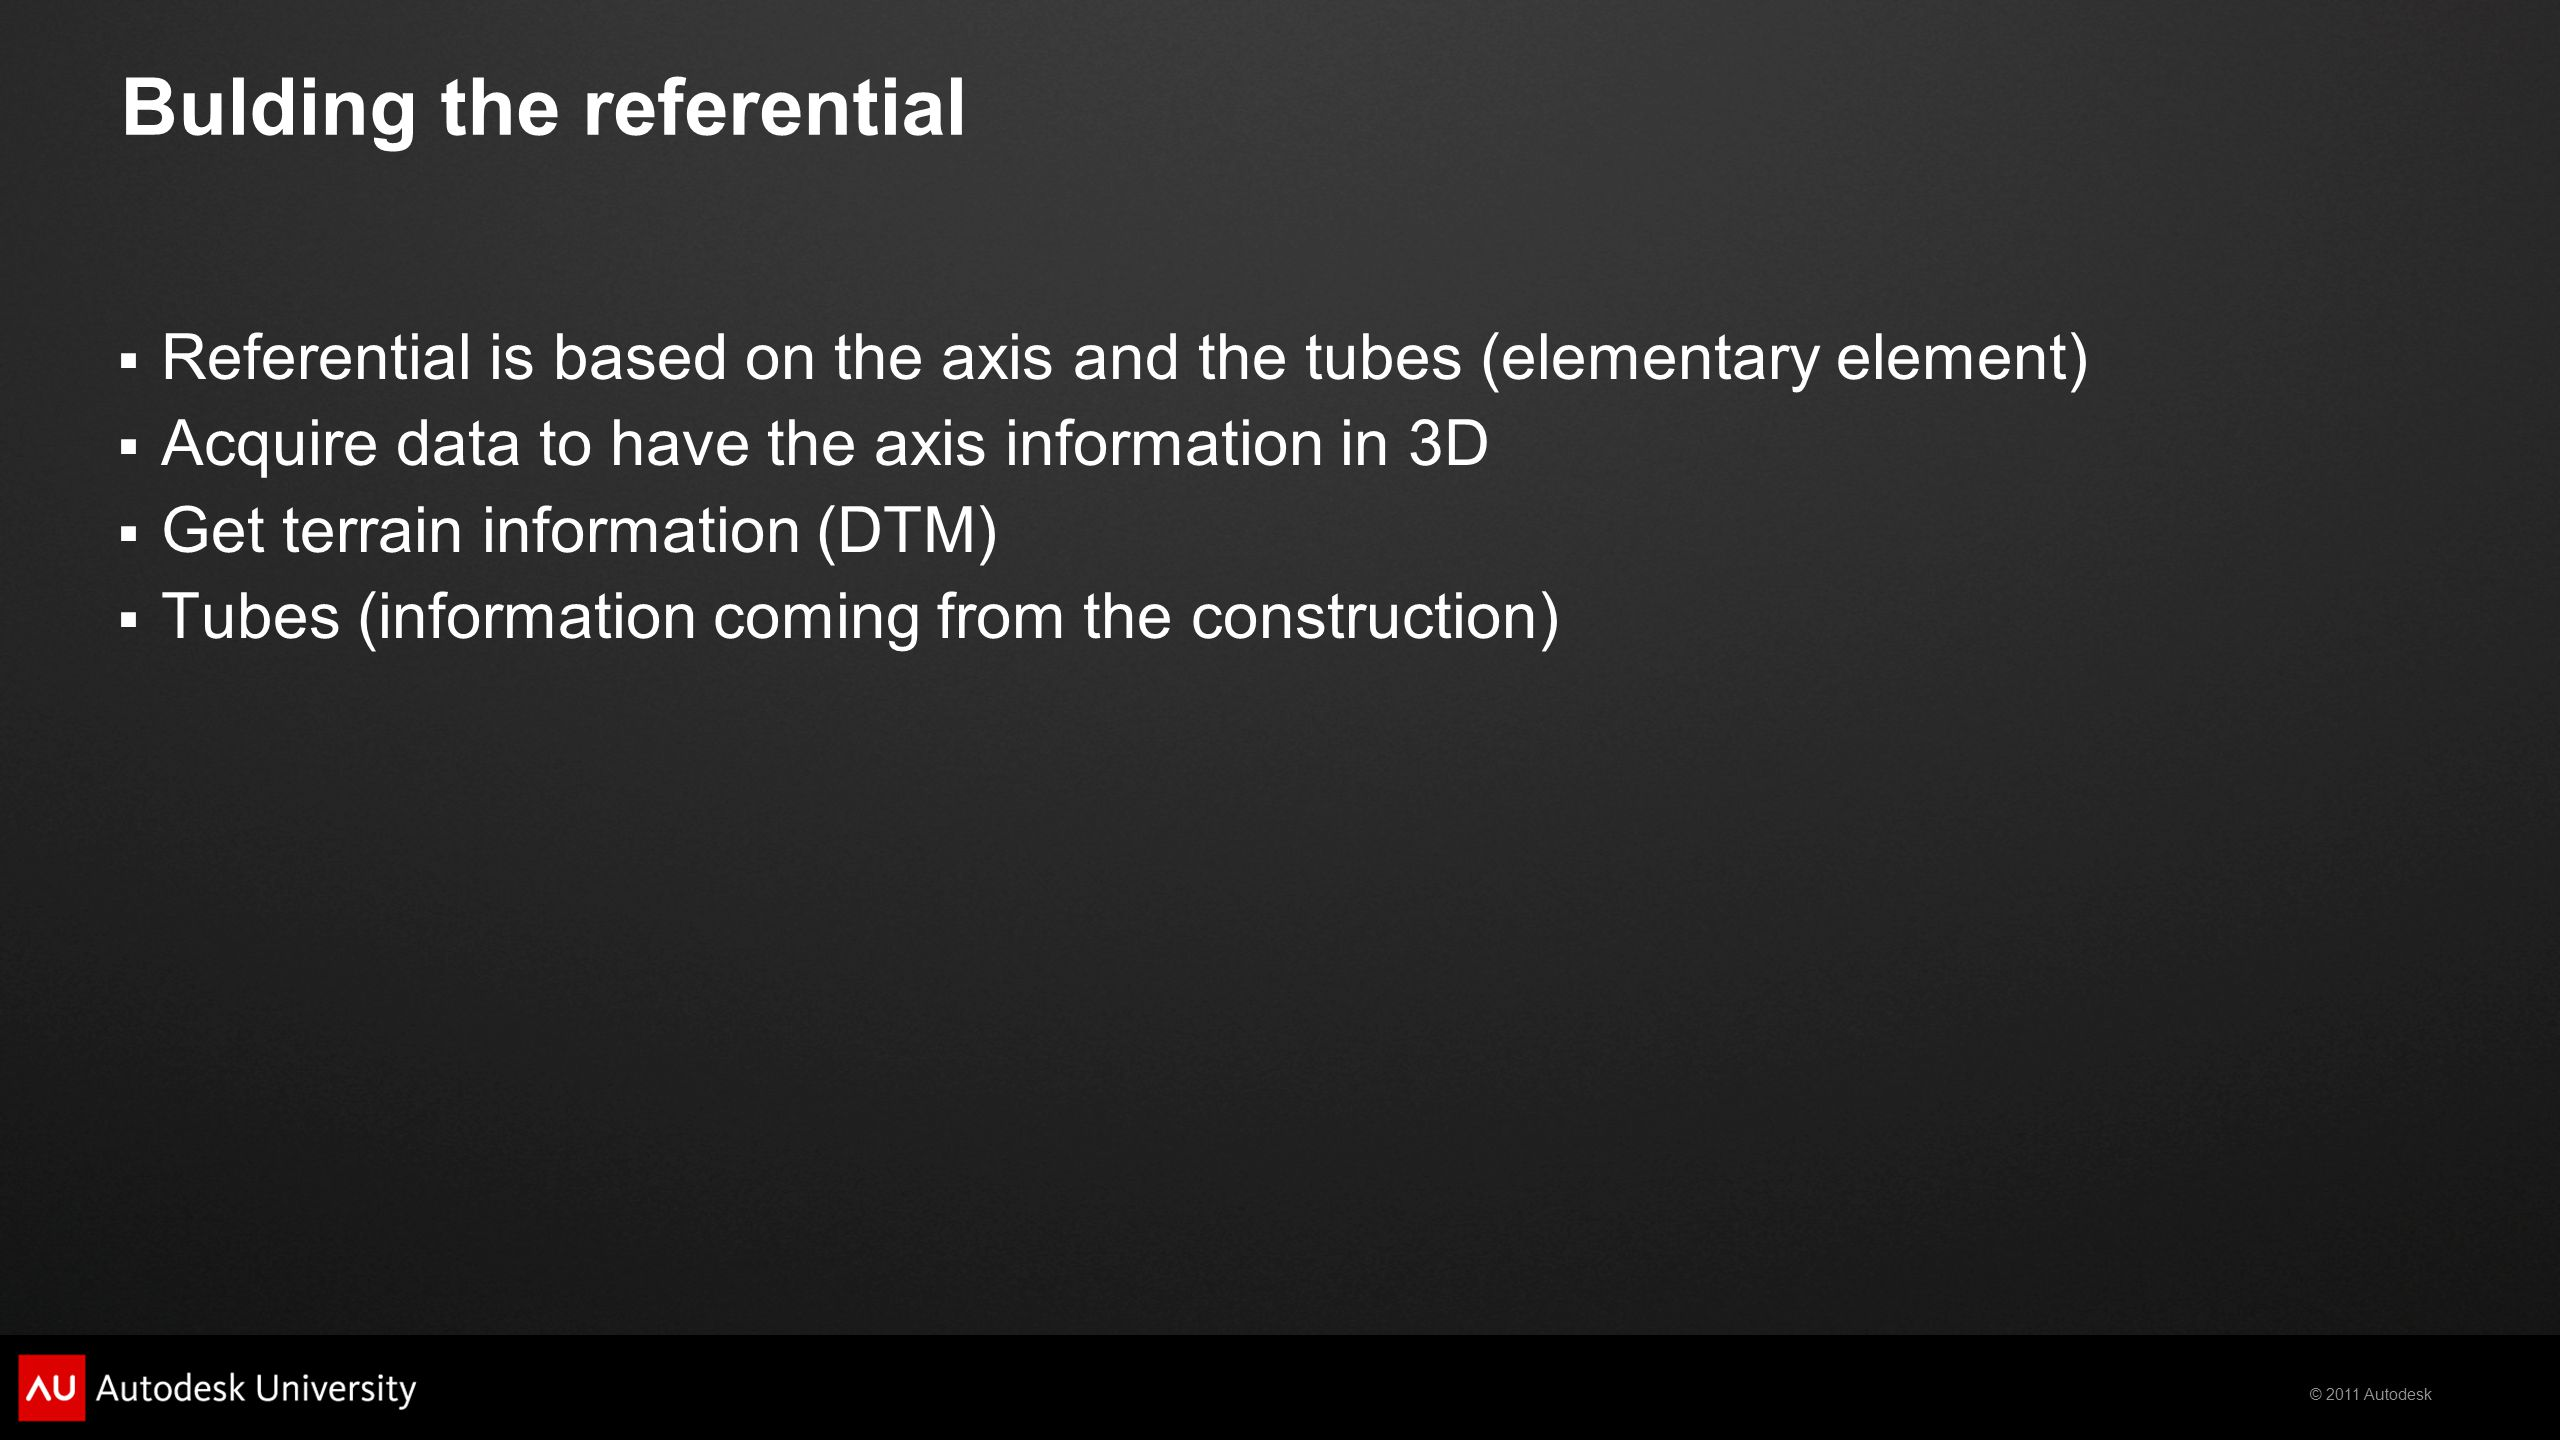 © 2011 Autodesk Bulding the referential  Referential is based on the axis and the tubes (elementary element)  Acquire data to have the axis information in 3D  Get terrain information (DTM)  Tubes (information coming from the construction)